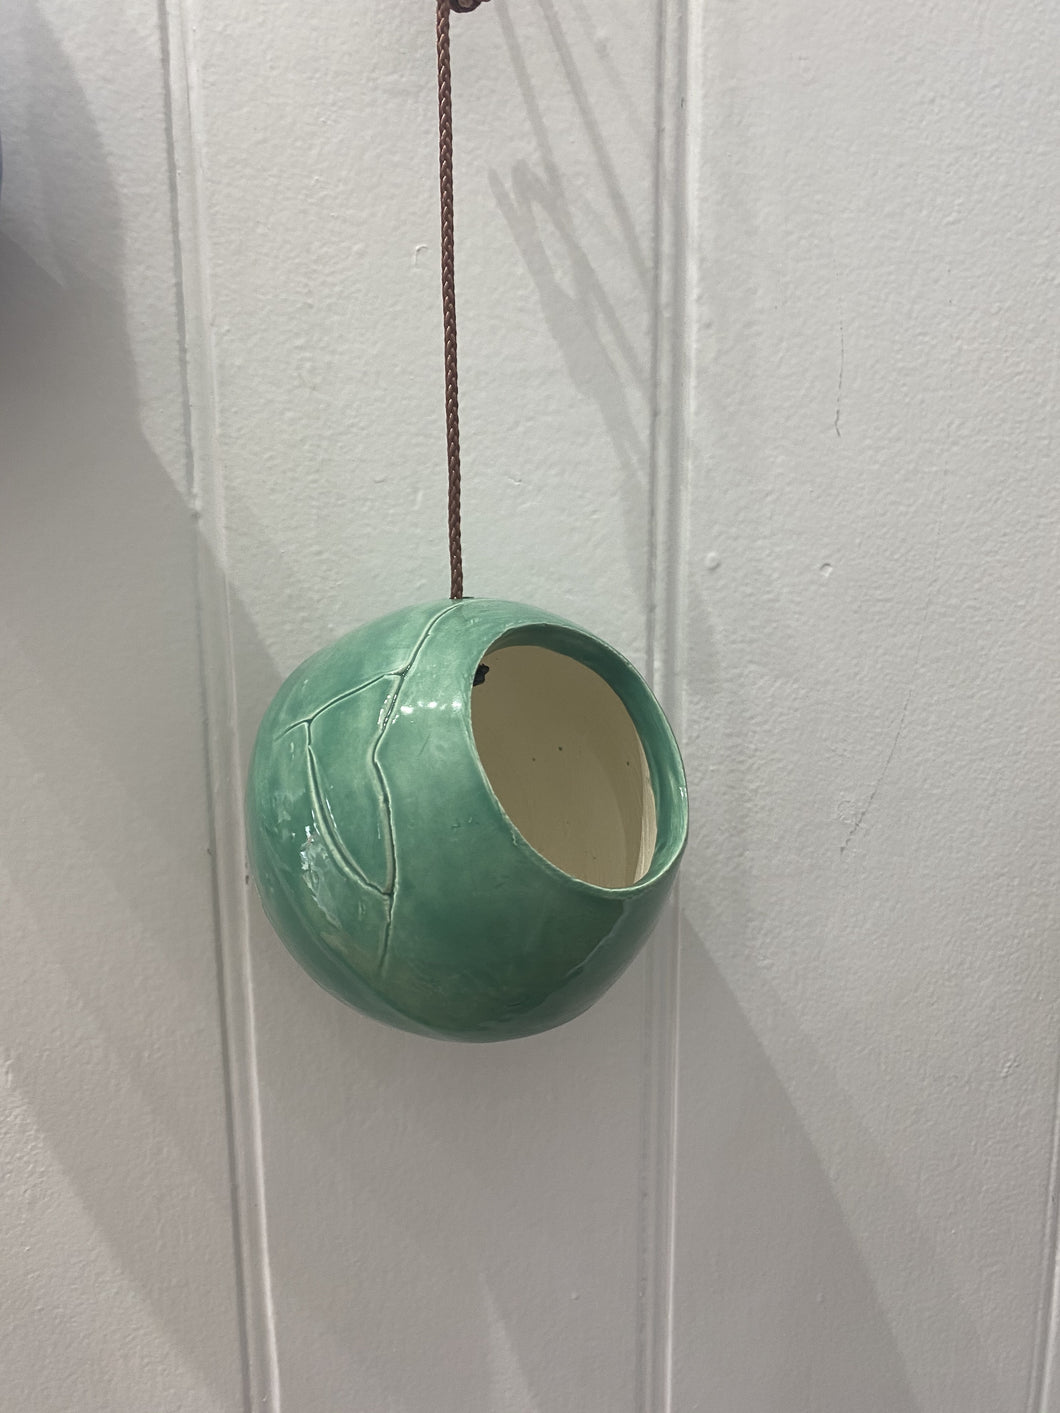 Pottery Hanging Pot XS-Home Decor-BGPottery-Bristle by Melissa Simmonds